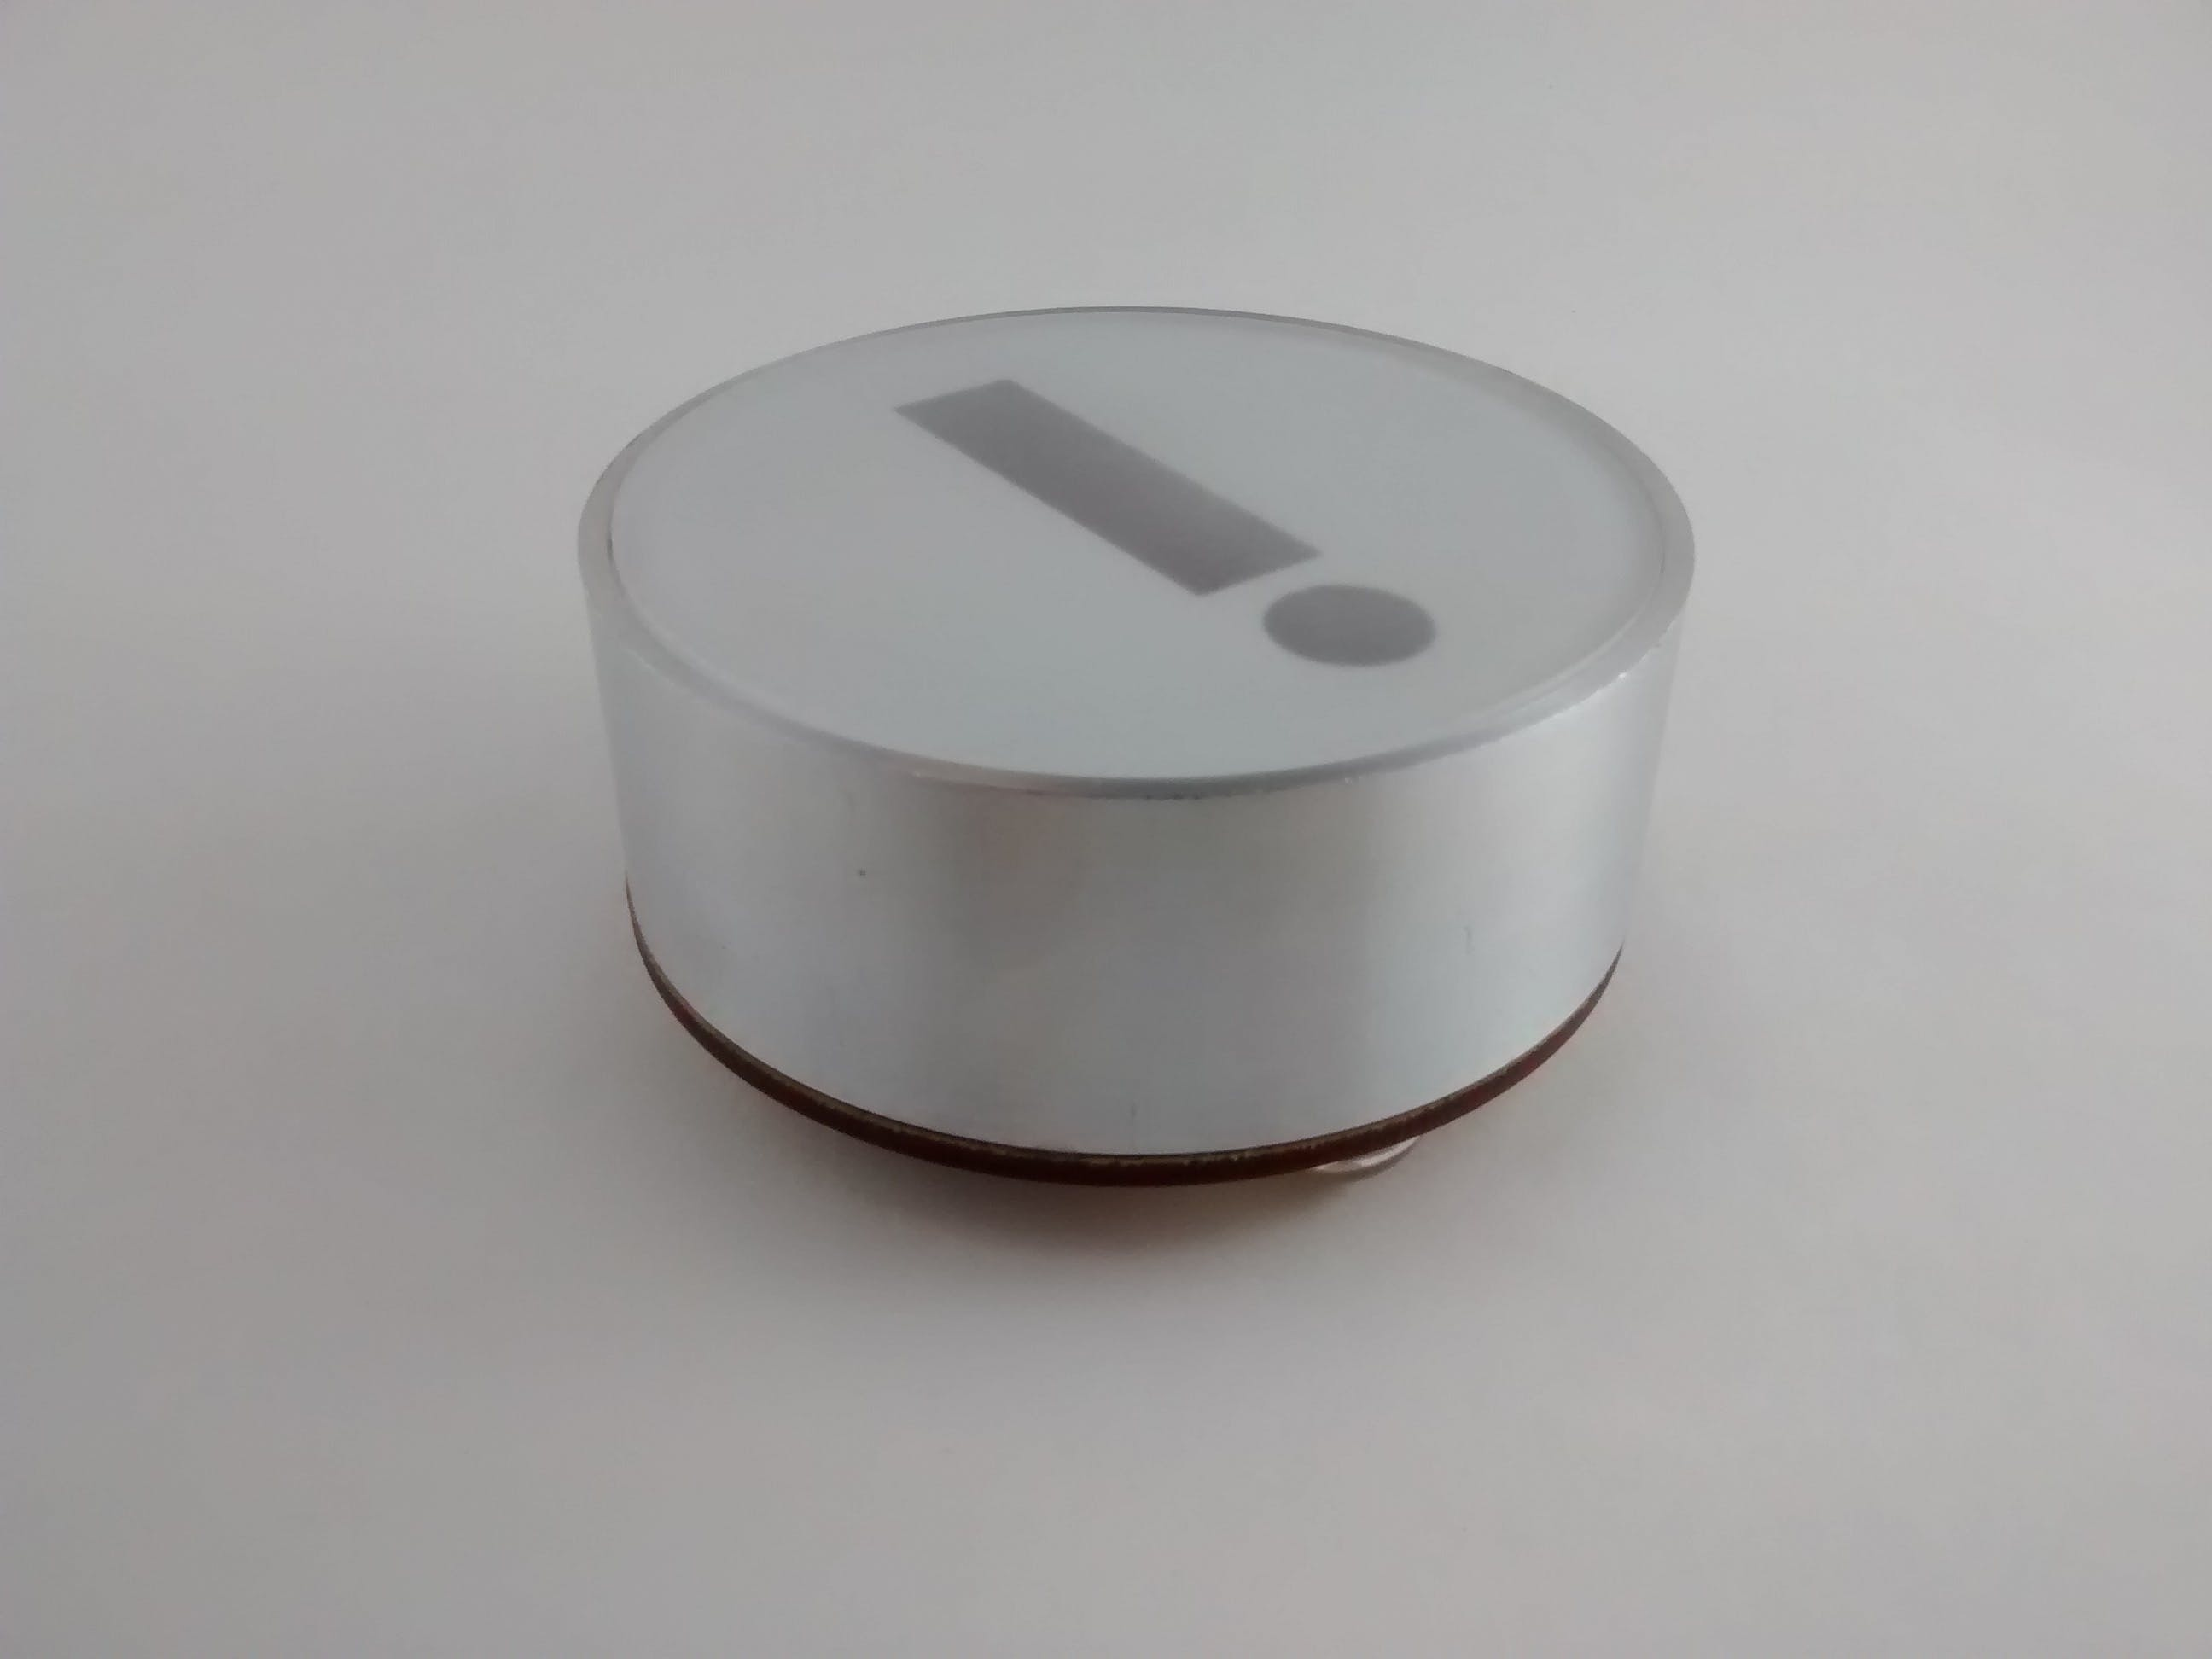 Notice how the lid lies flat over the sides due to the inset.